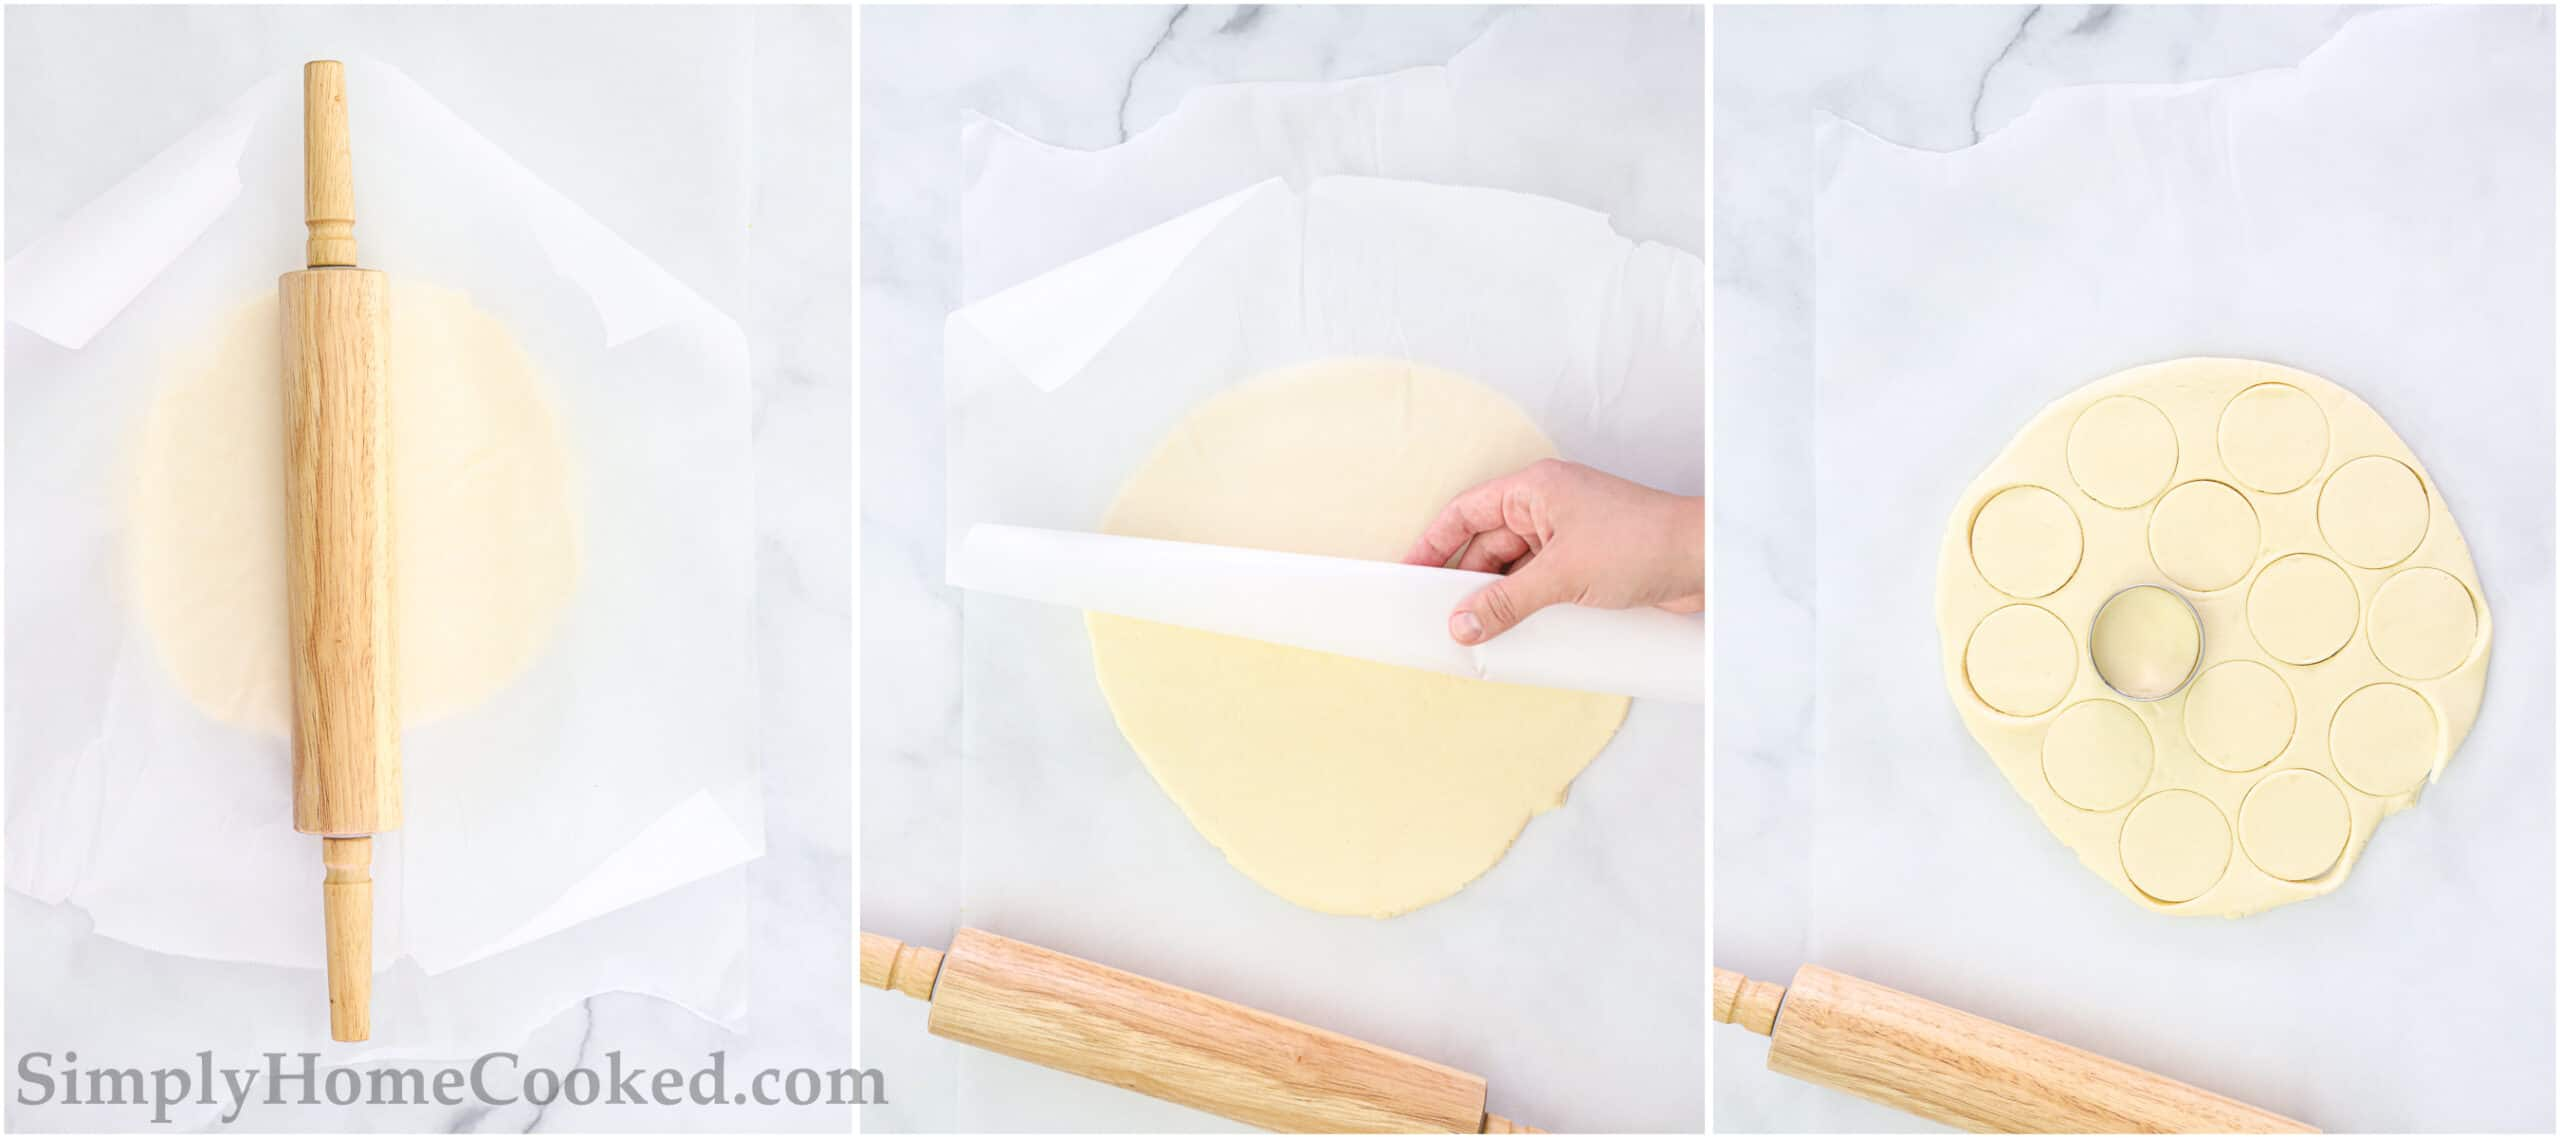 Steps to make Classic Shortbread Cookies, including rolling out the dough between parchment paper sheets, then peeling it off to cut out shapes.